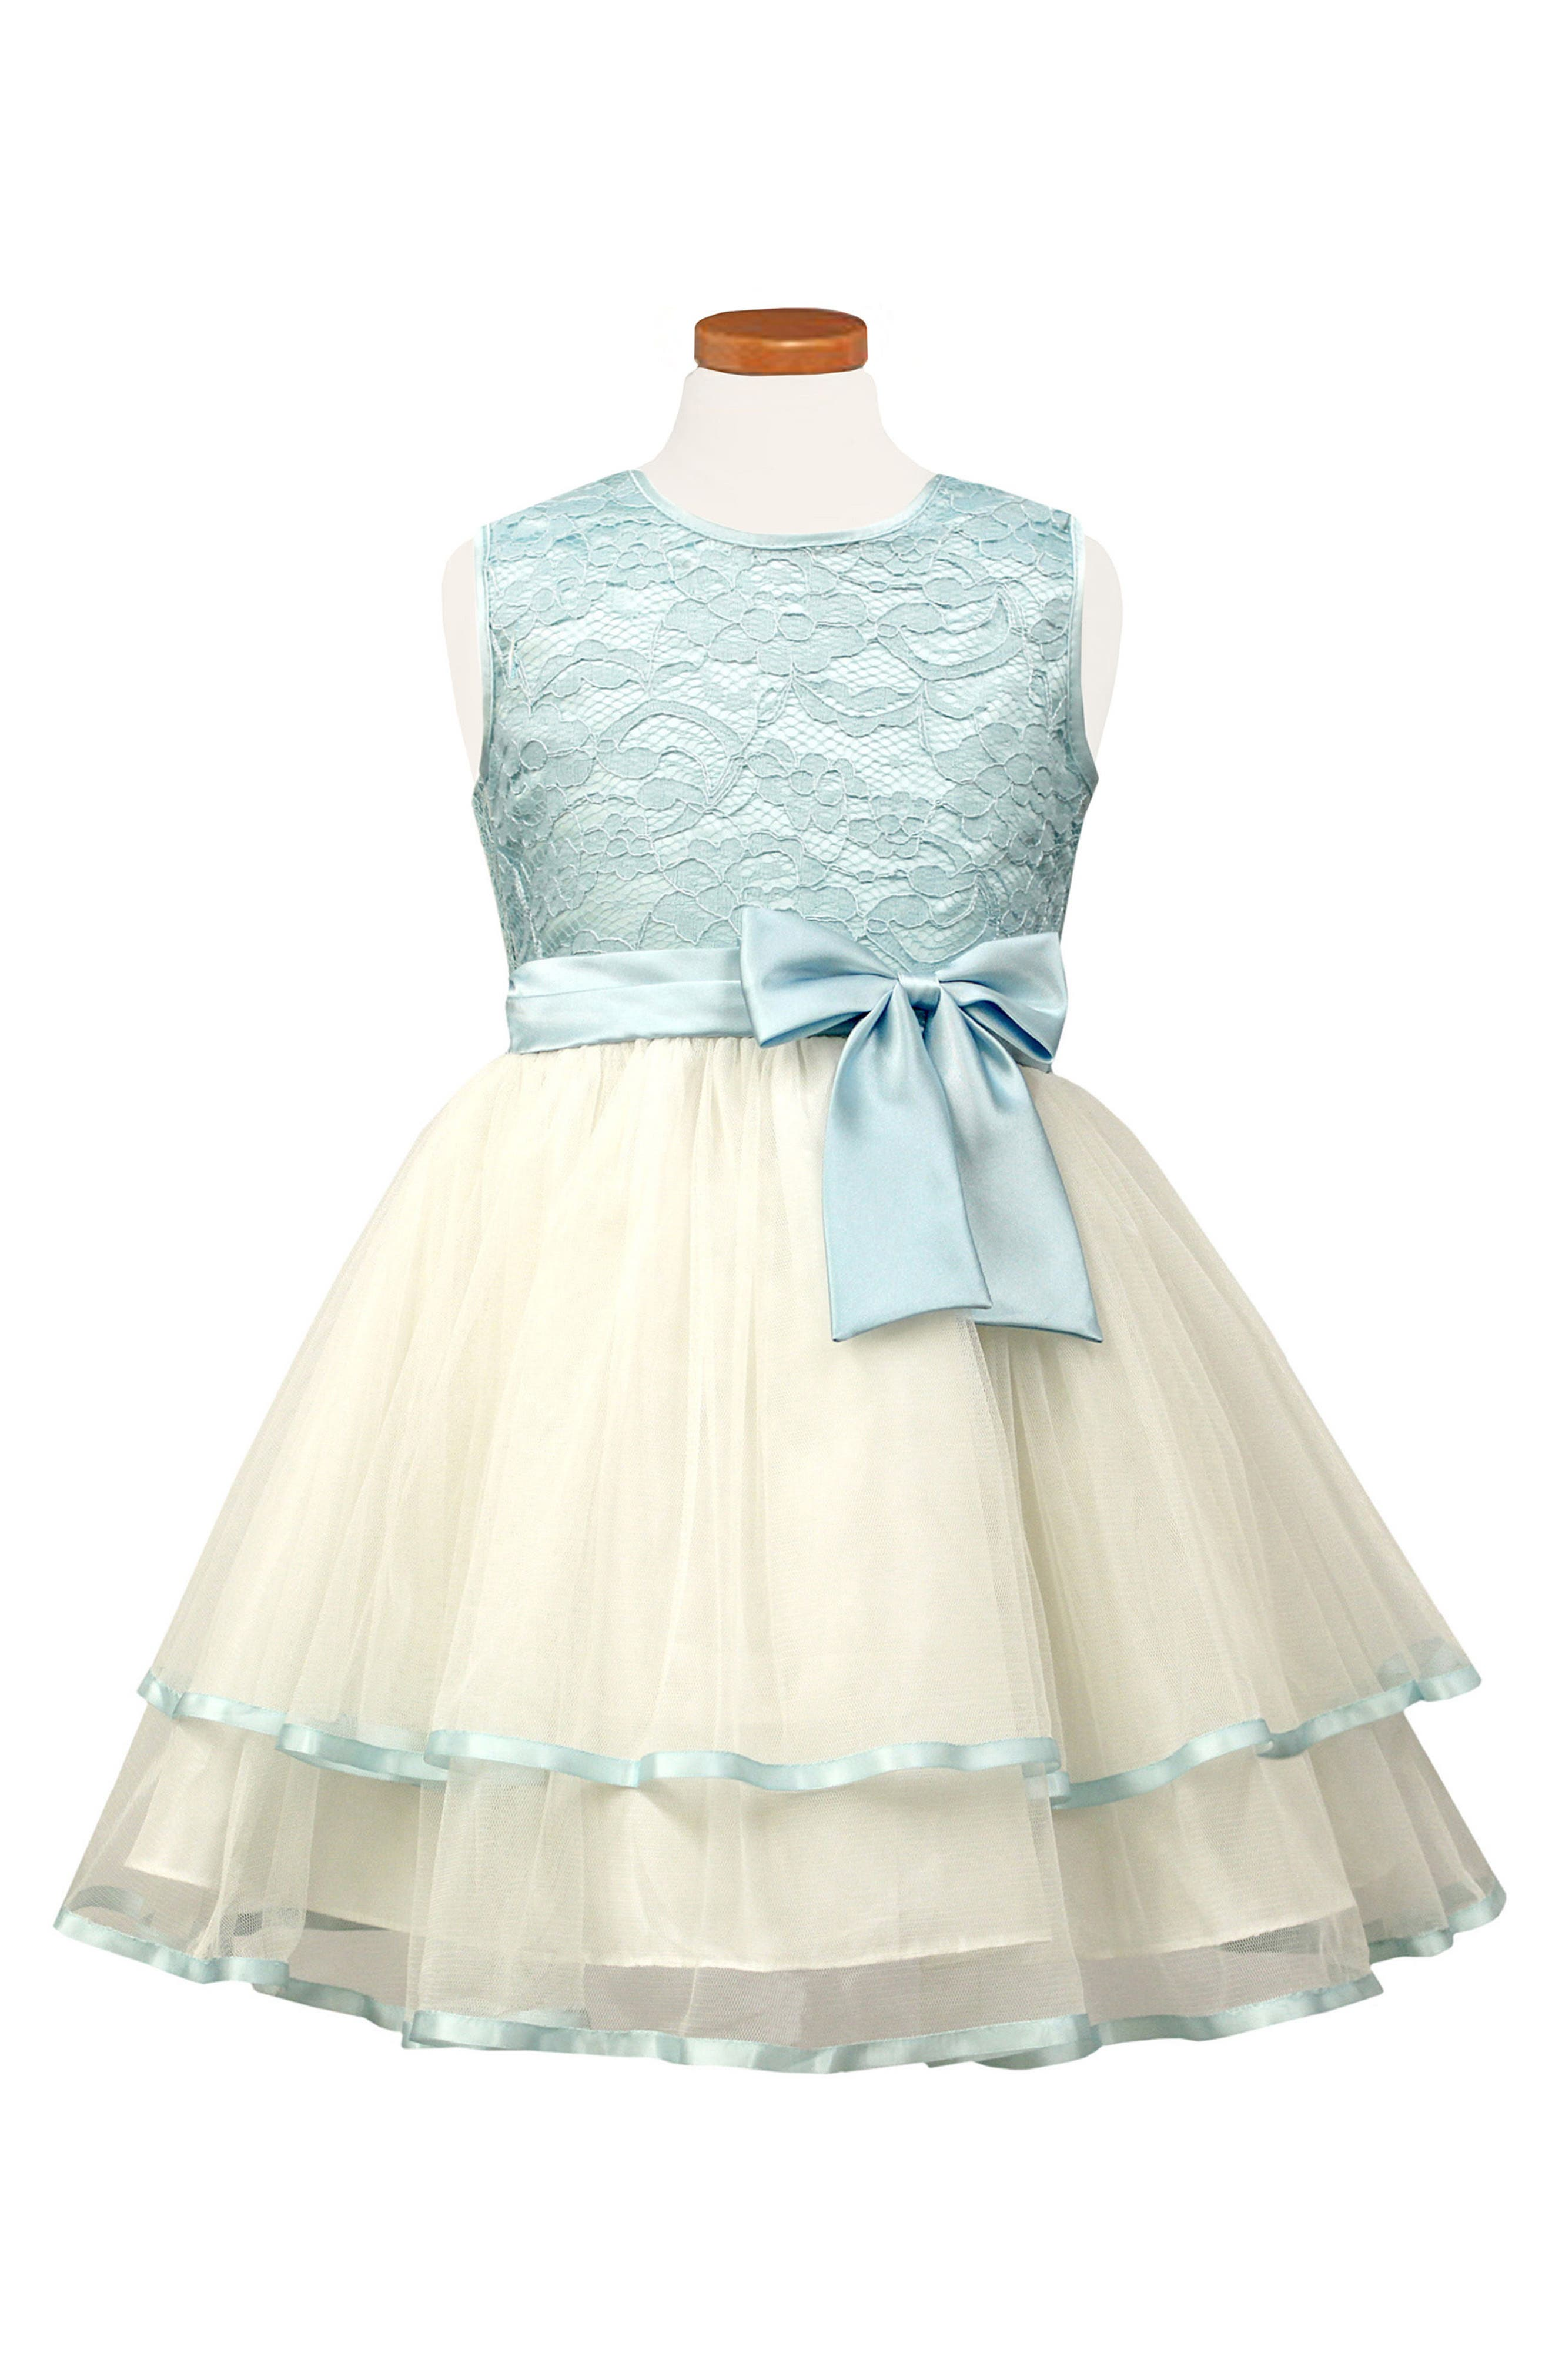 Tiered Lace & Tulle Dress,                             Main thumbnail 1, color,                             431